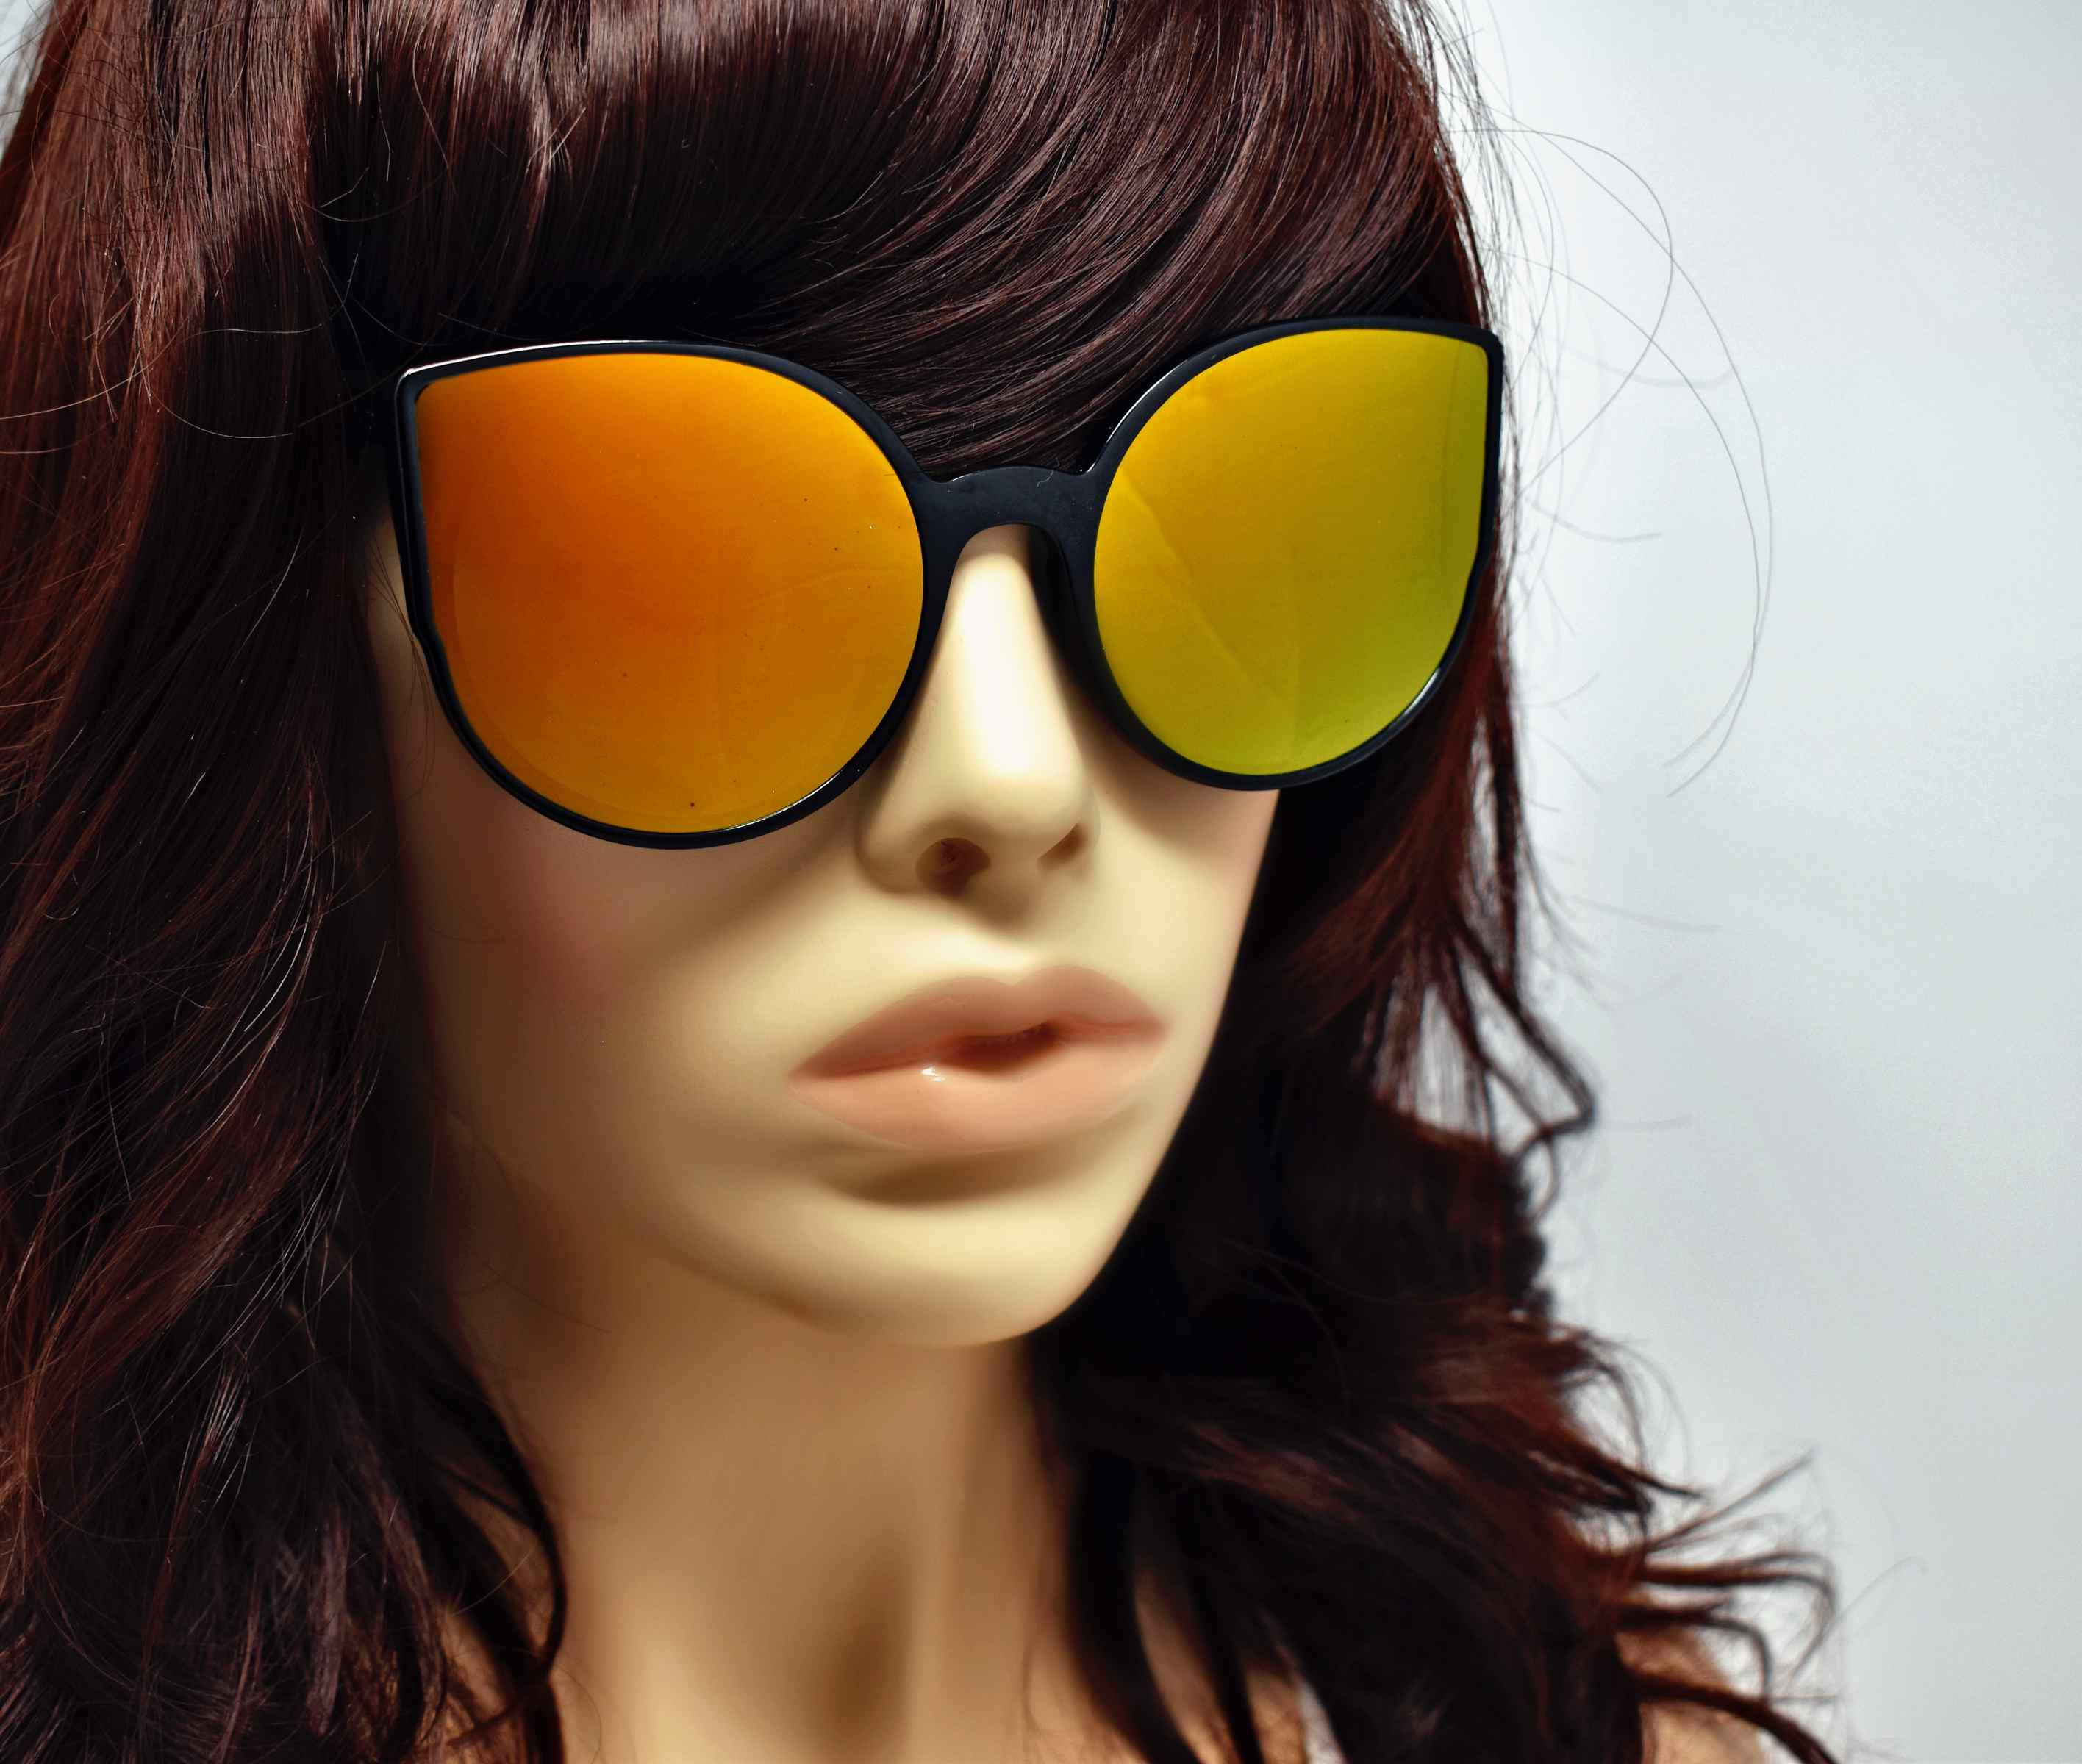 Say hello to our stylish Tansy black framed sunglasses with golden green mirrored lens and a cat eye shape.